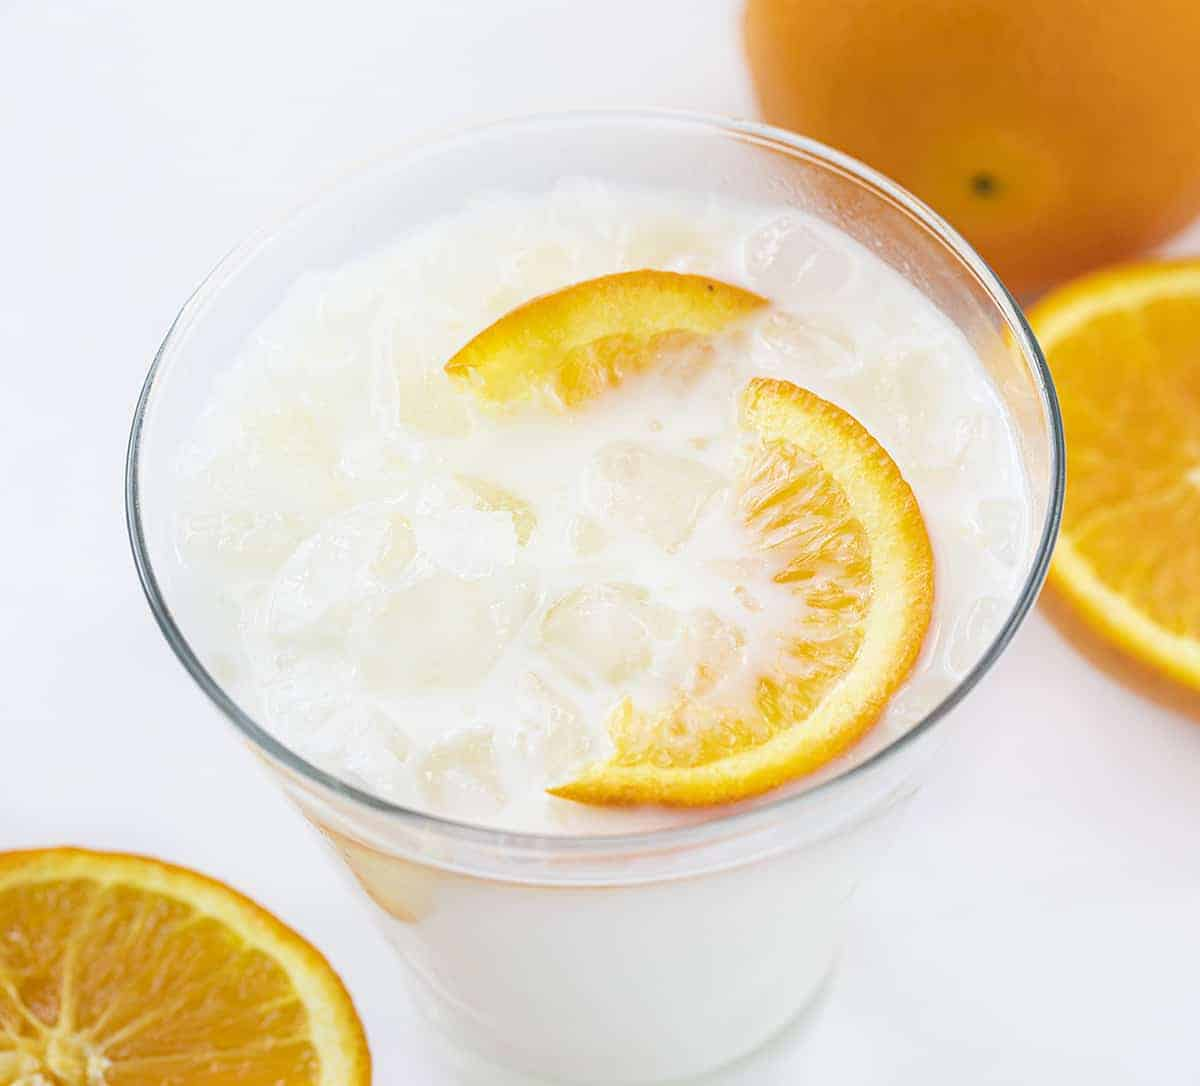 Iced Orange Creamsicle Drink with Orange Slices and Crushed Ice